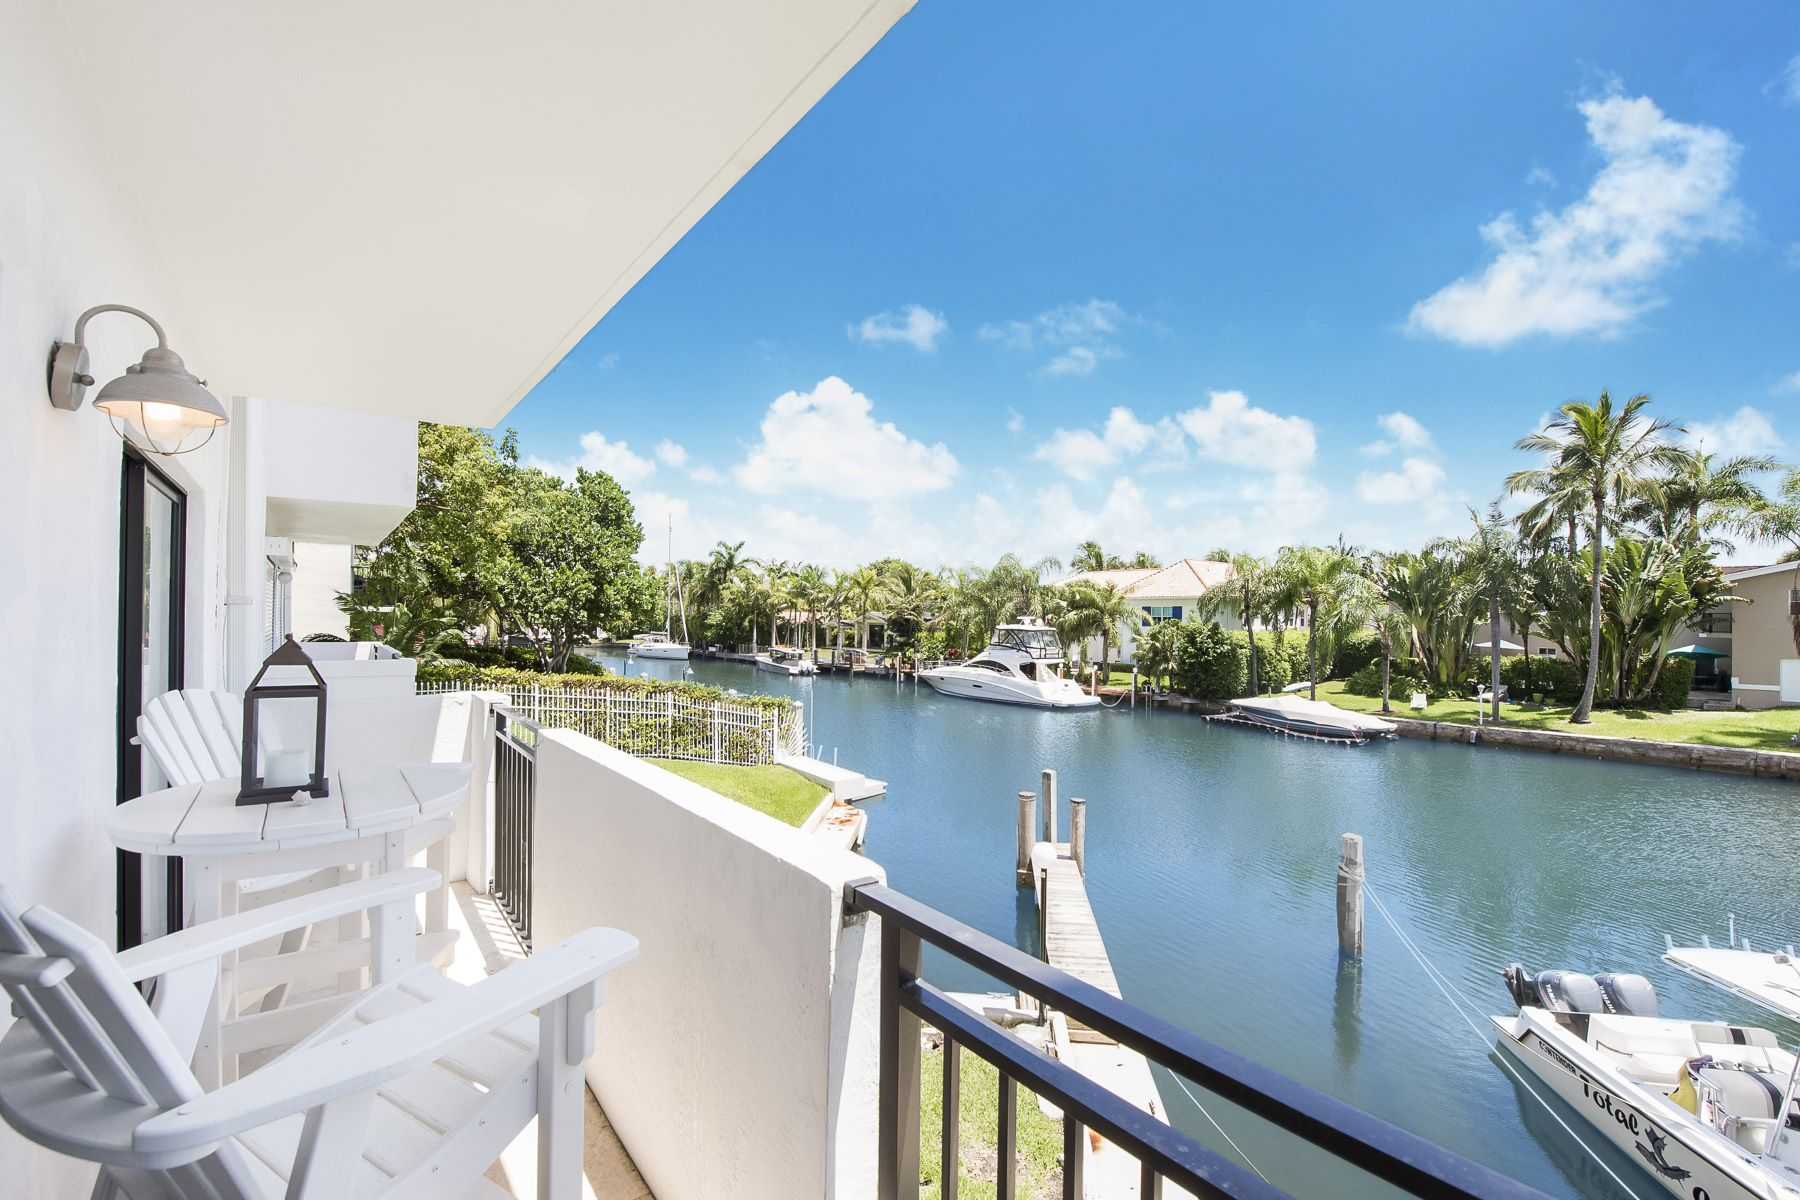 Condominium for Rent at 6901 Edgewater Dr #211 6901 Edgewater Dr 211 Coral Gables, Florida, 33133 United States